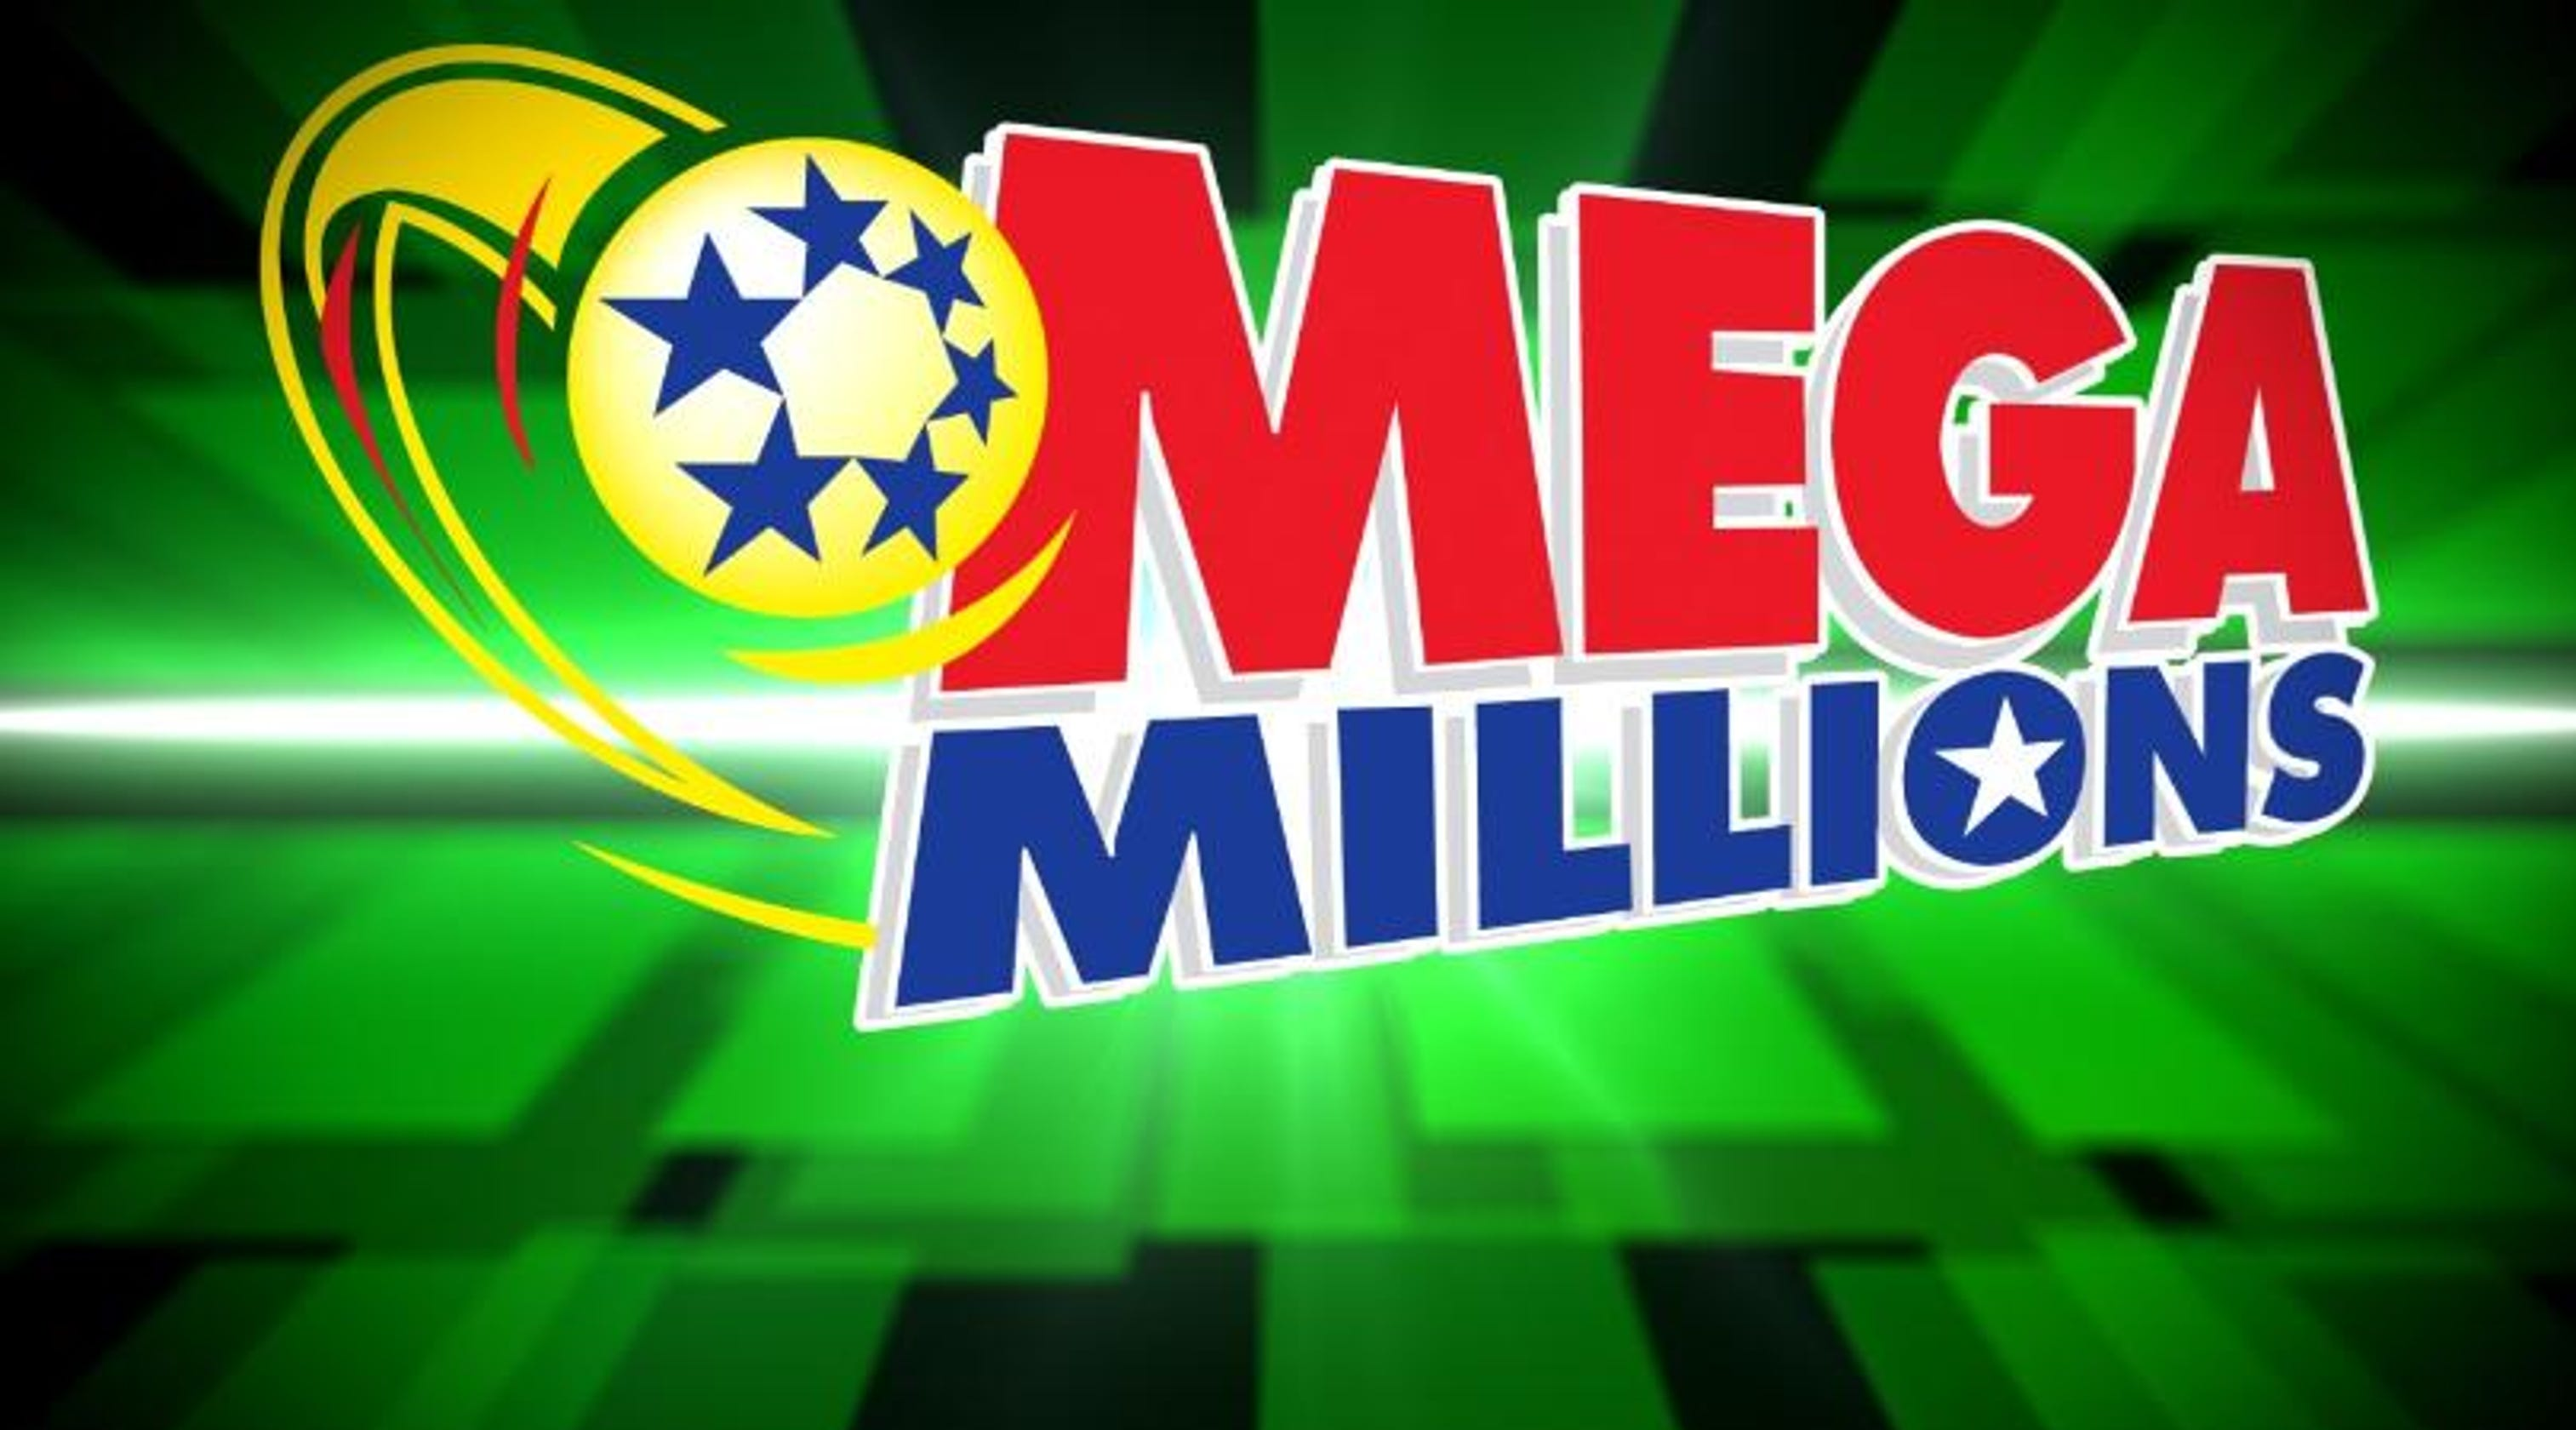 Mega Millions Friday Where To Buy Tickets What Is Costs How To